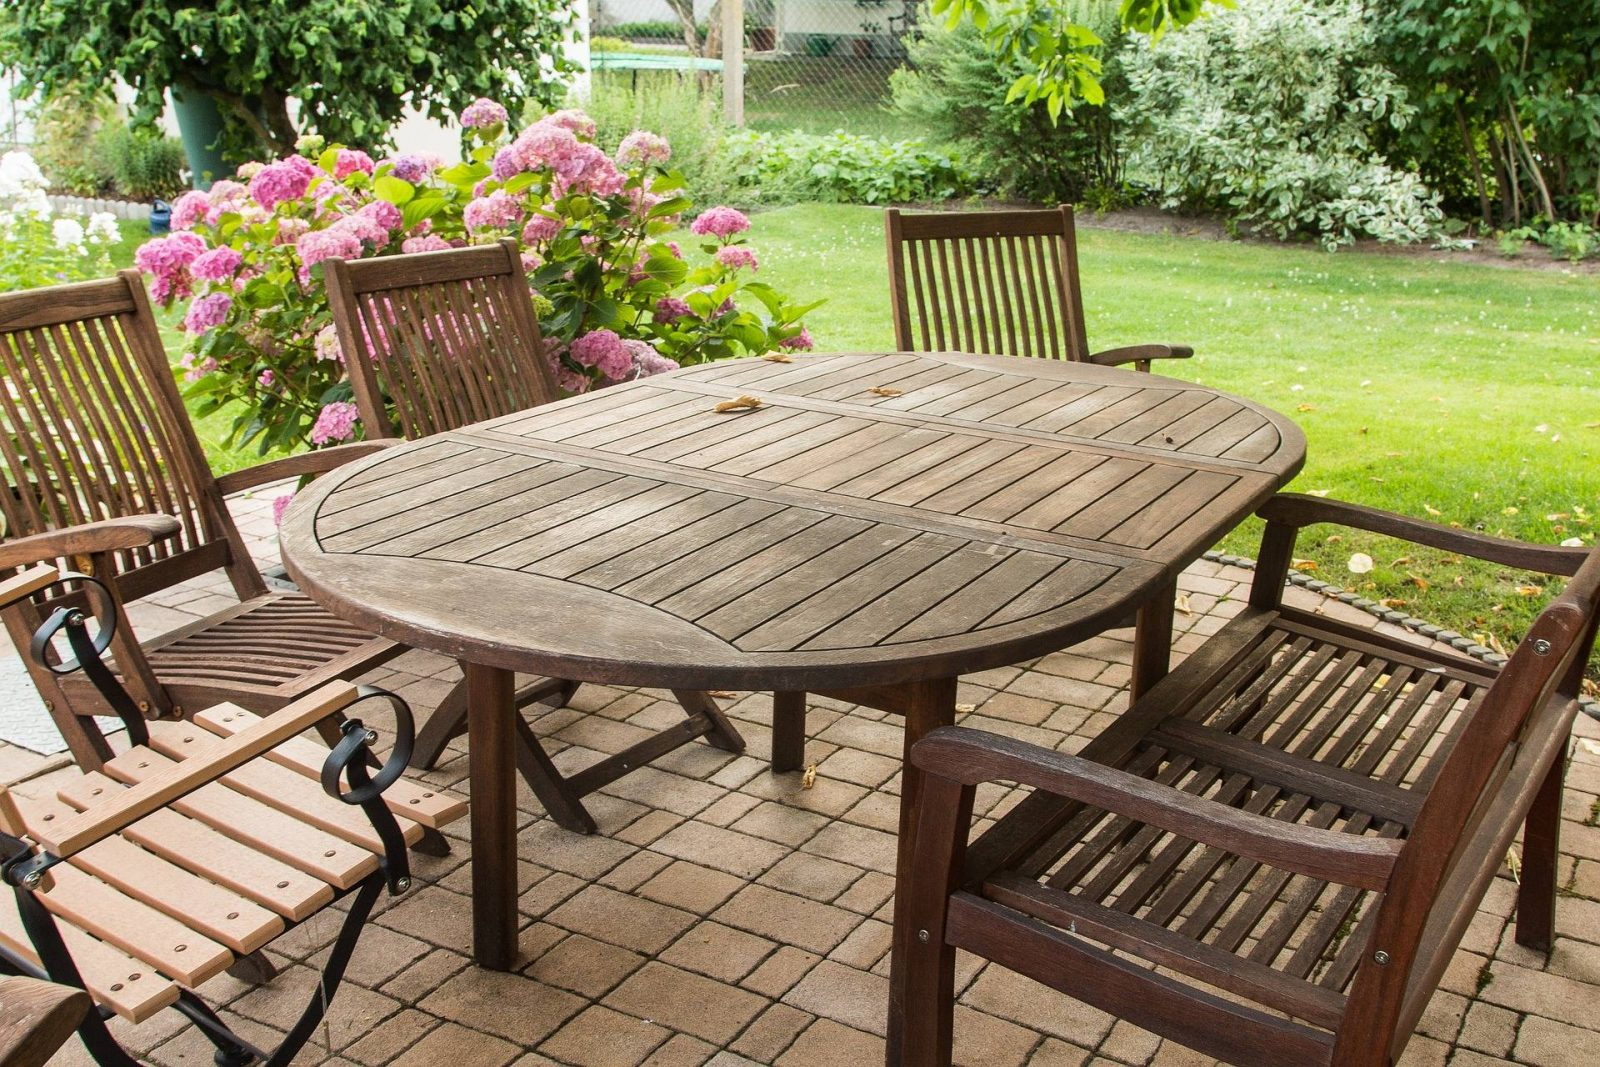 7 tips to keep in mind while buying outdoor furniture